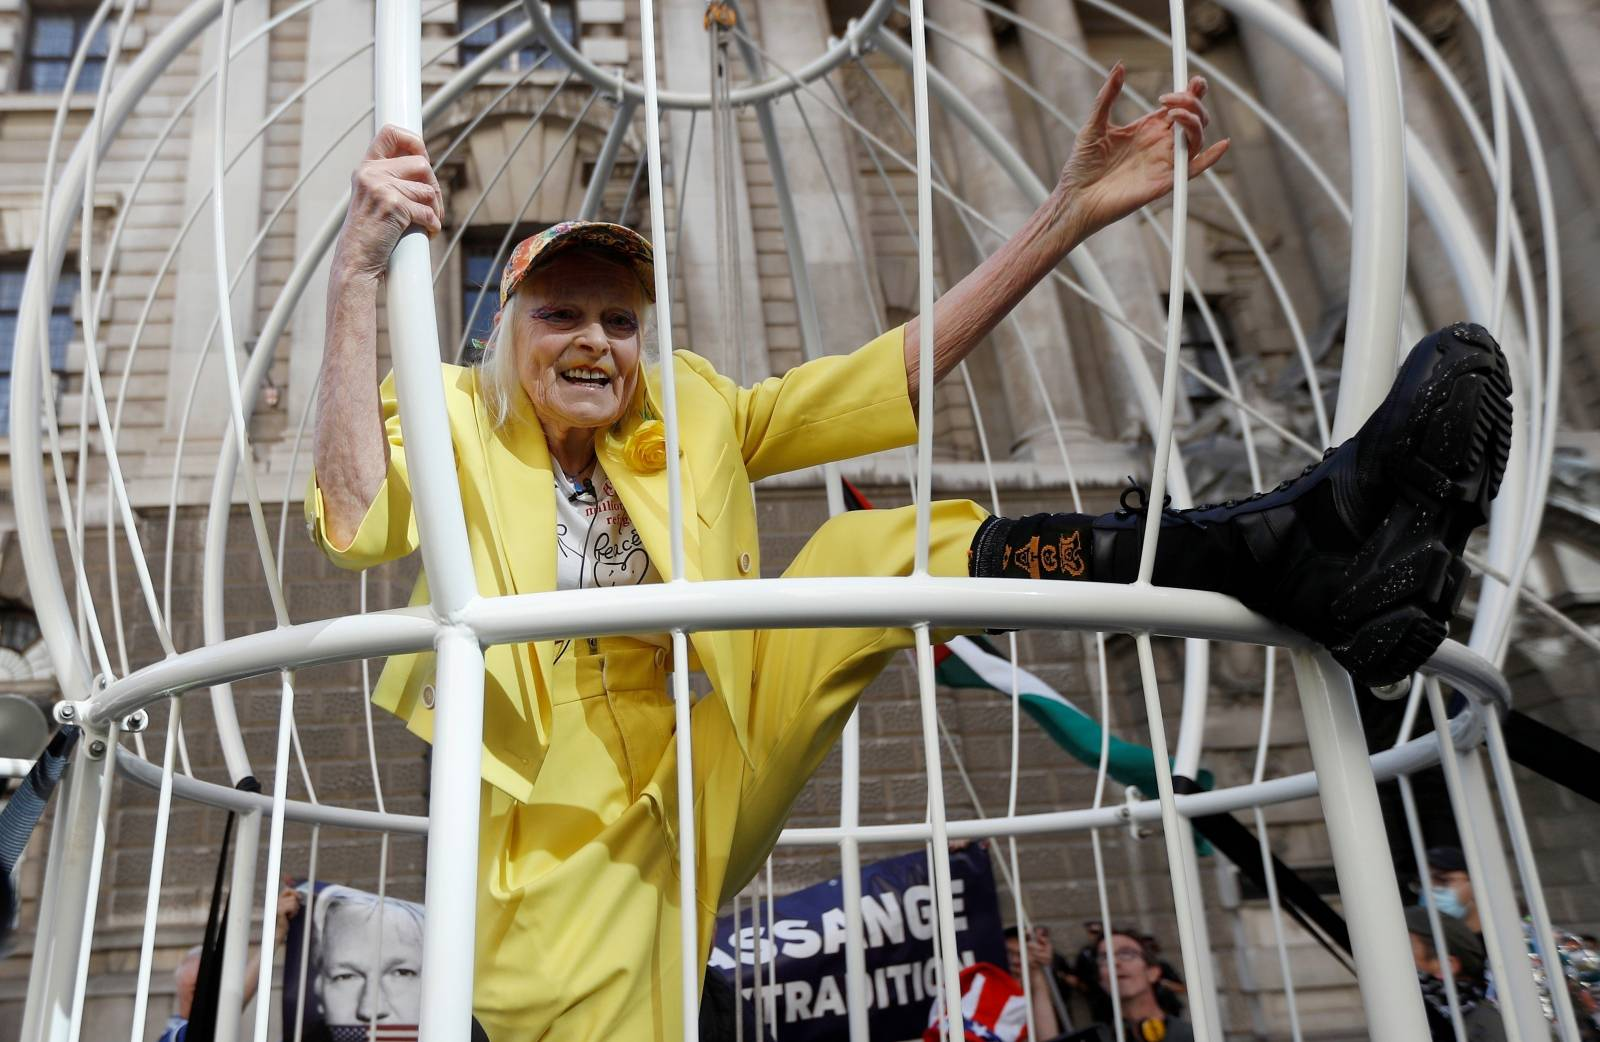 Vivienne Westwood demonstrates outside the Old Bailey in support of Julian Assange, in London